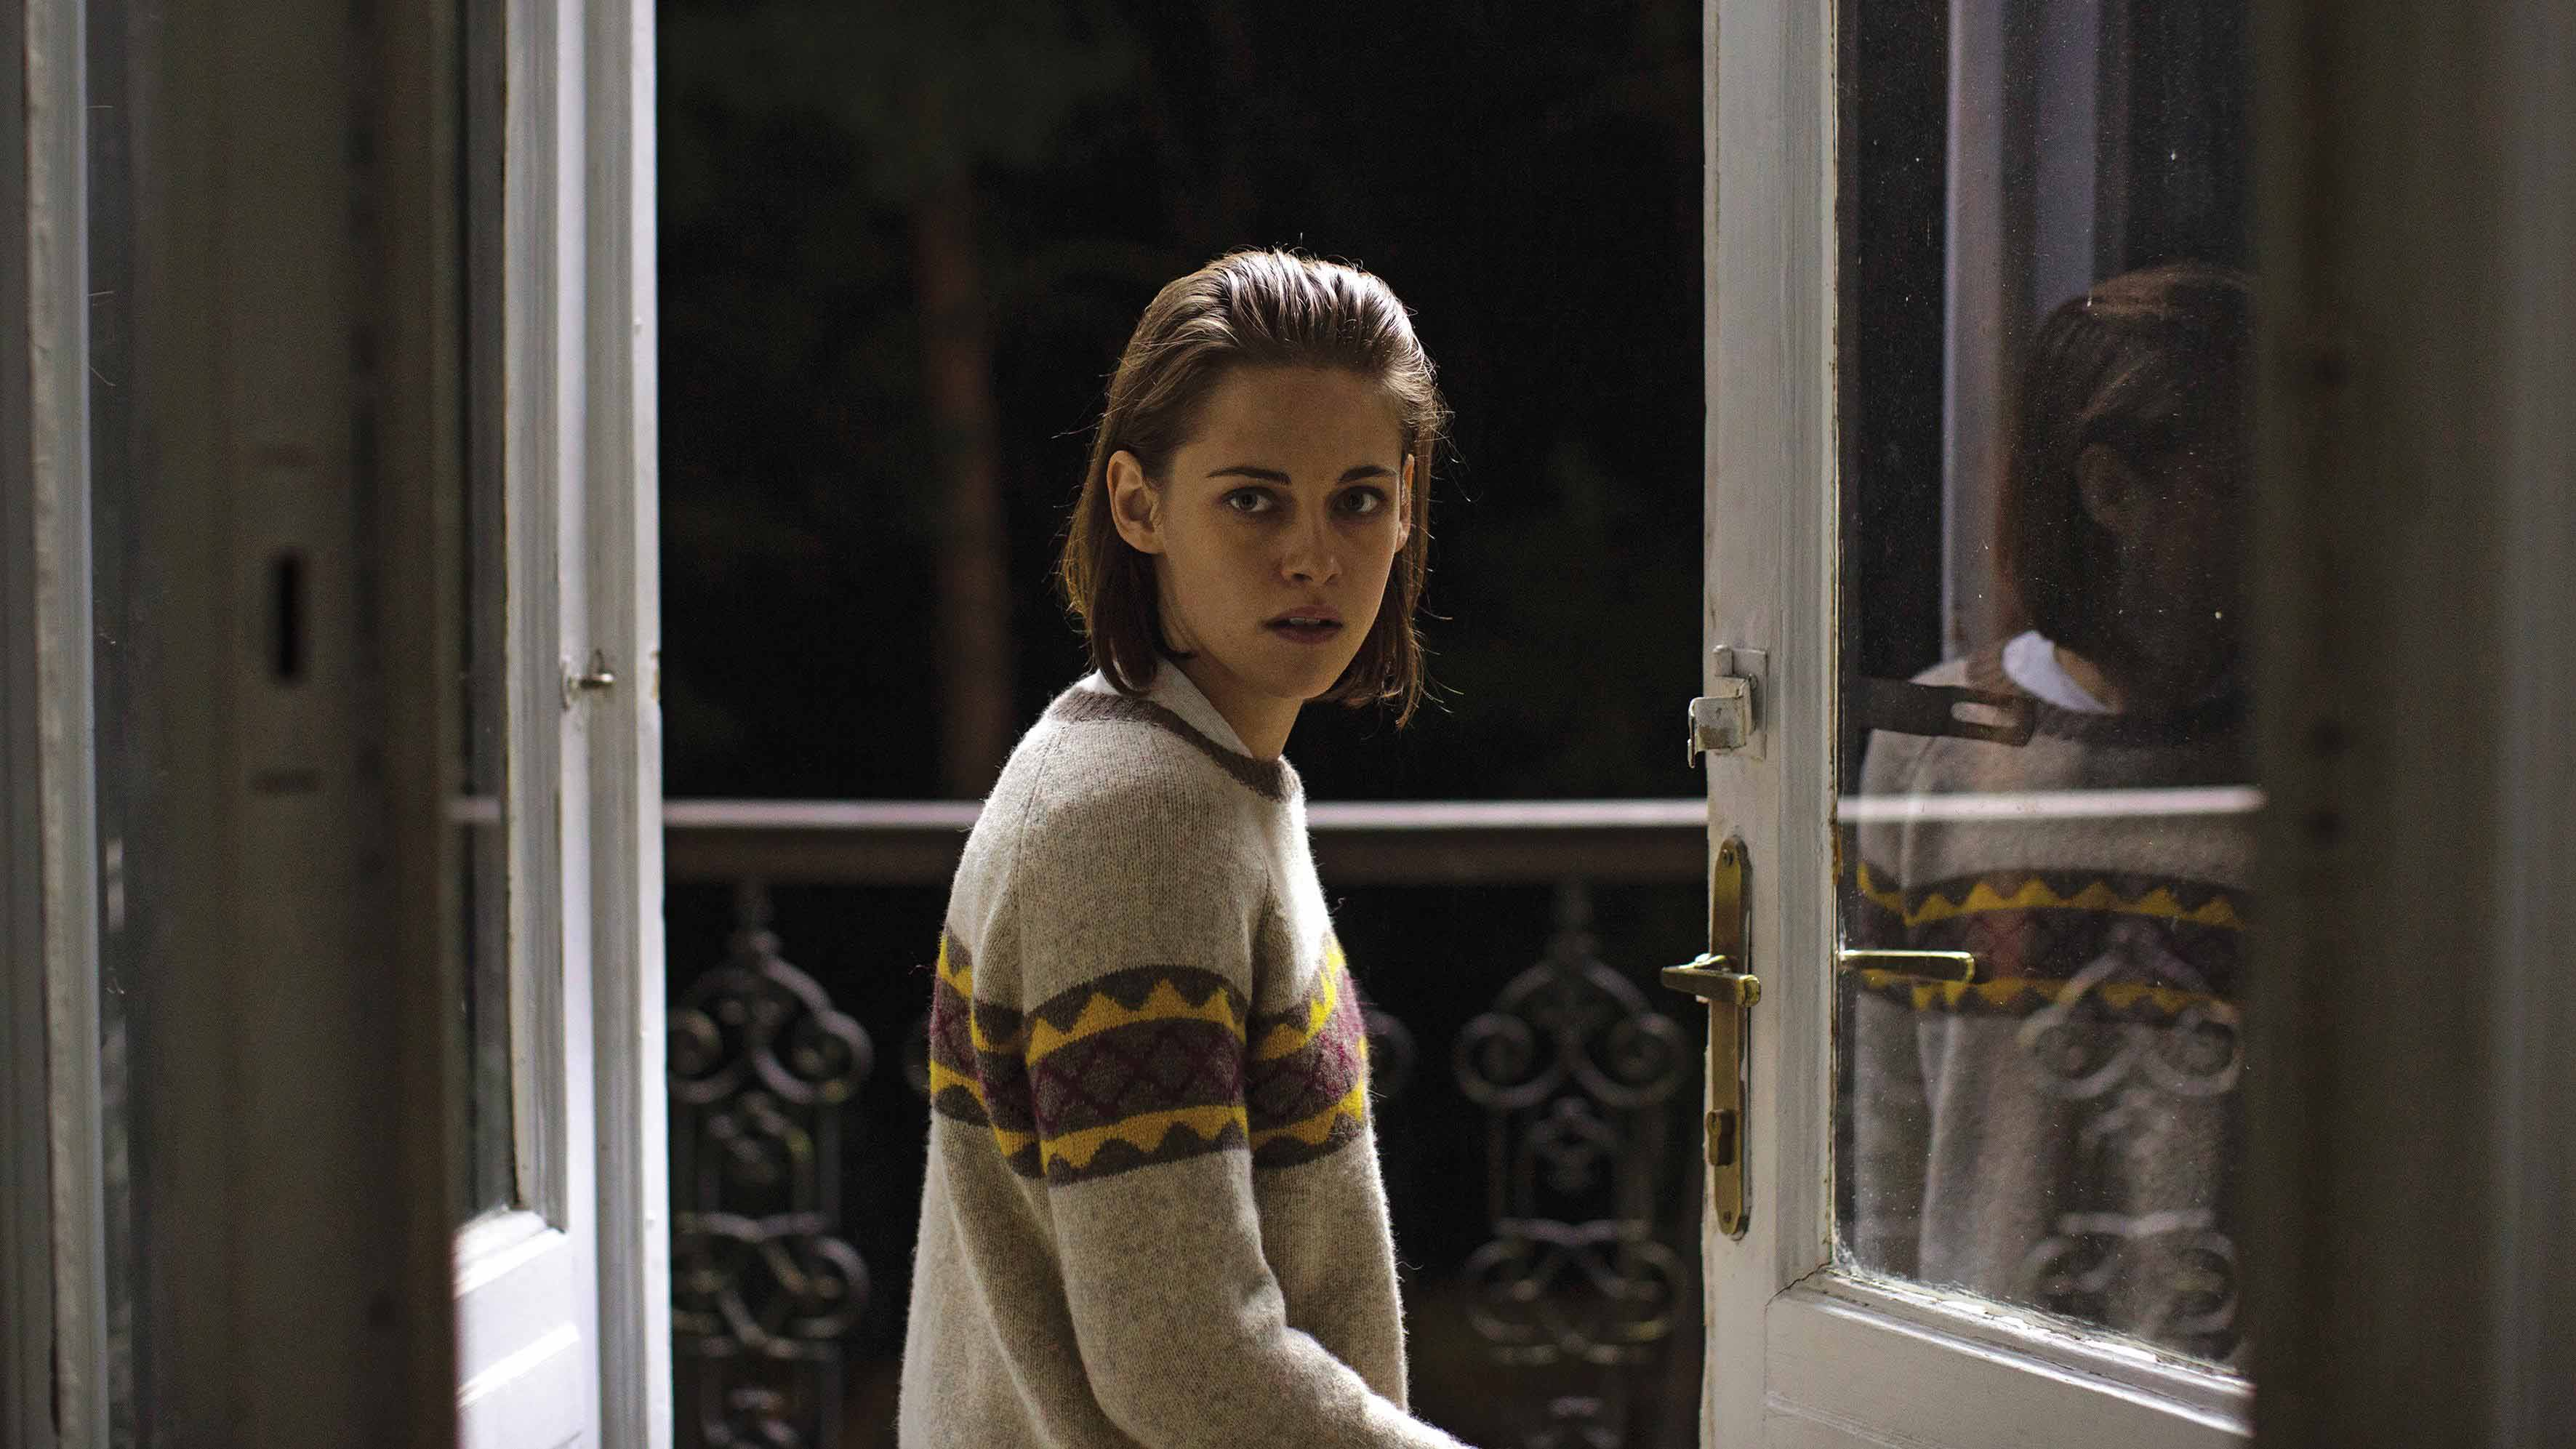 Direct from Cannes: is Kristen Stewart the biggest actress of our time?